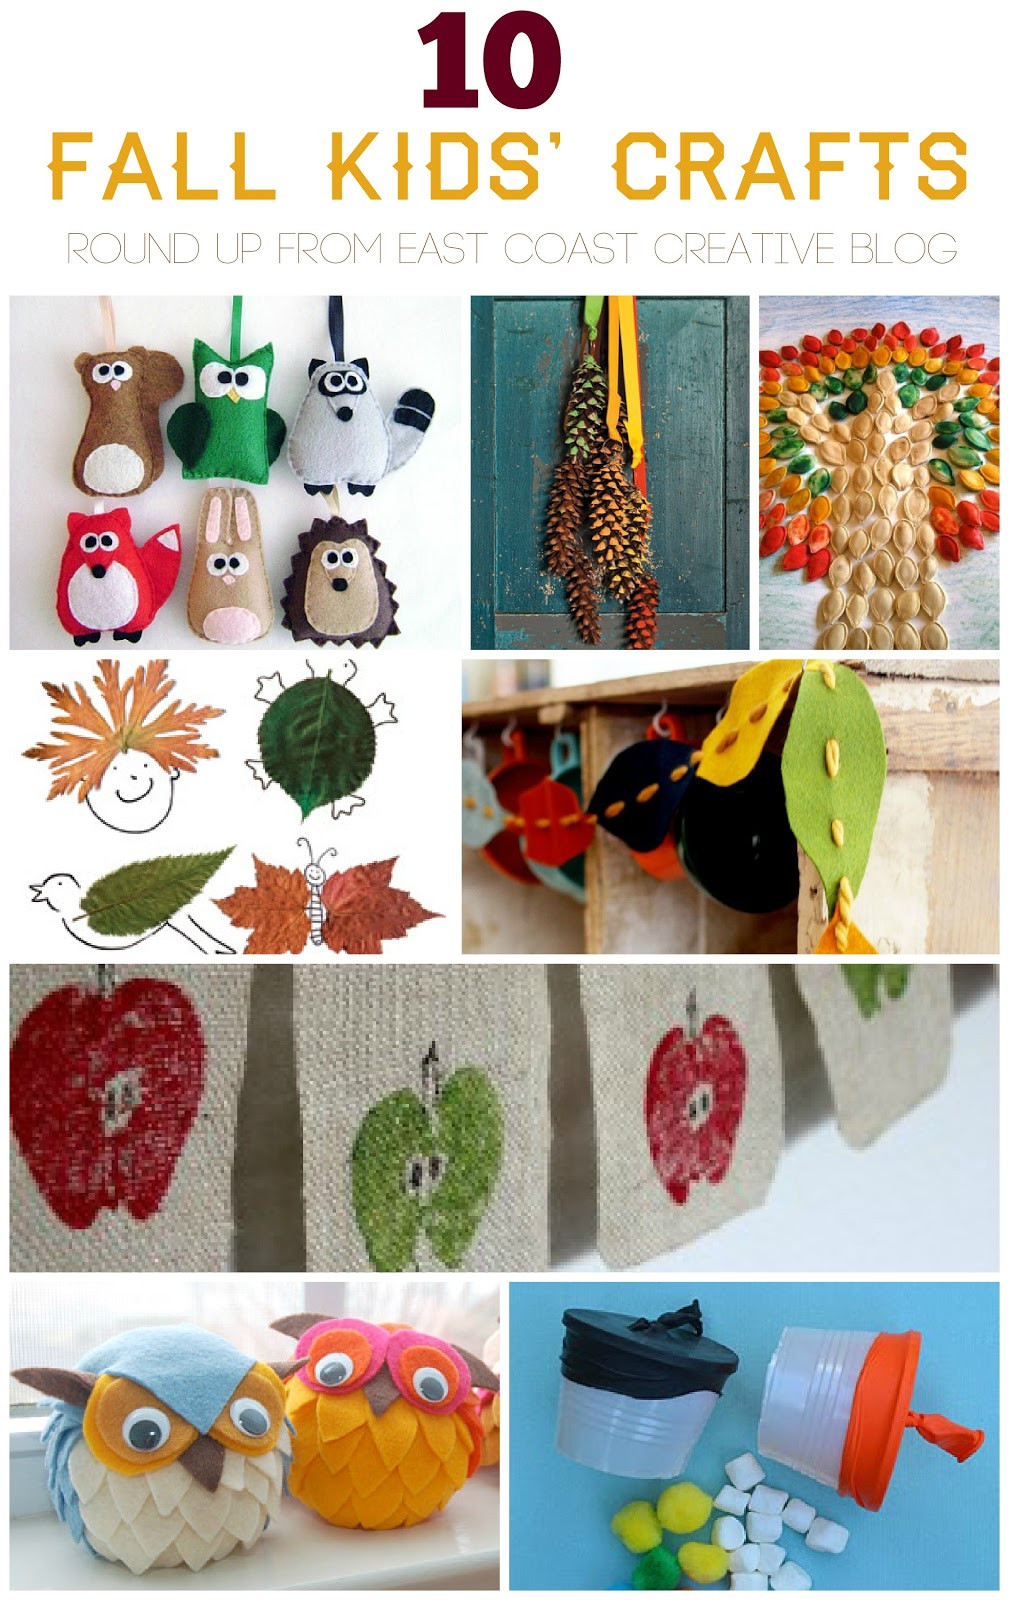 Best ideas about Fall Crafts Ideas For Kids . Save or Pin 10 Fall Kids Crafts East Coast Creative Blog Now.